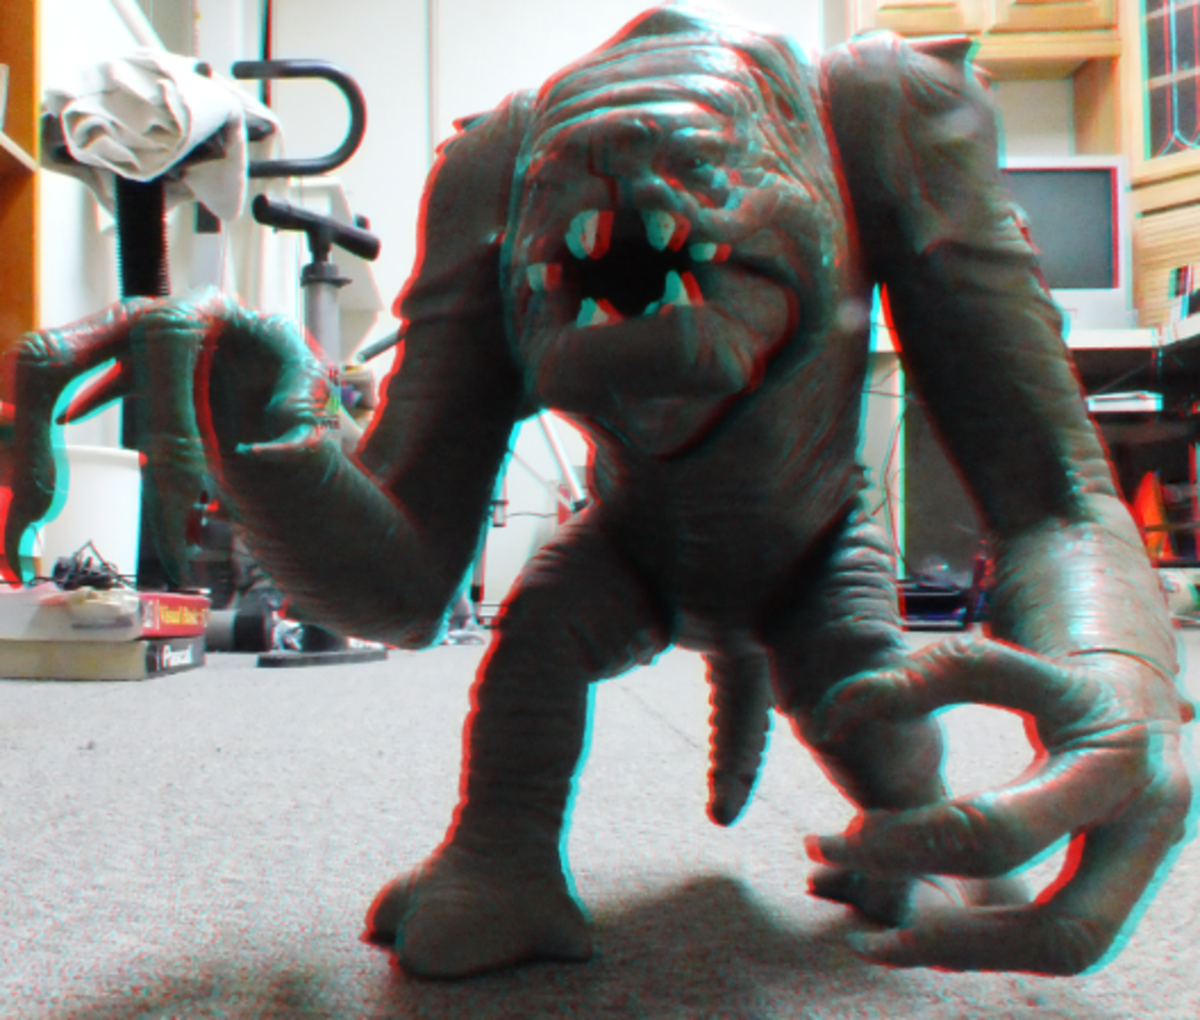 3D photo of a Rancor Star Wars toy with its hands coming out of the screen.